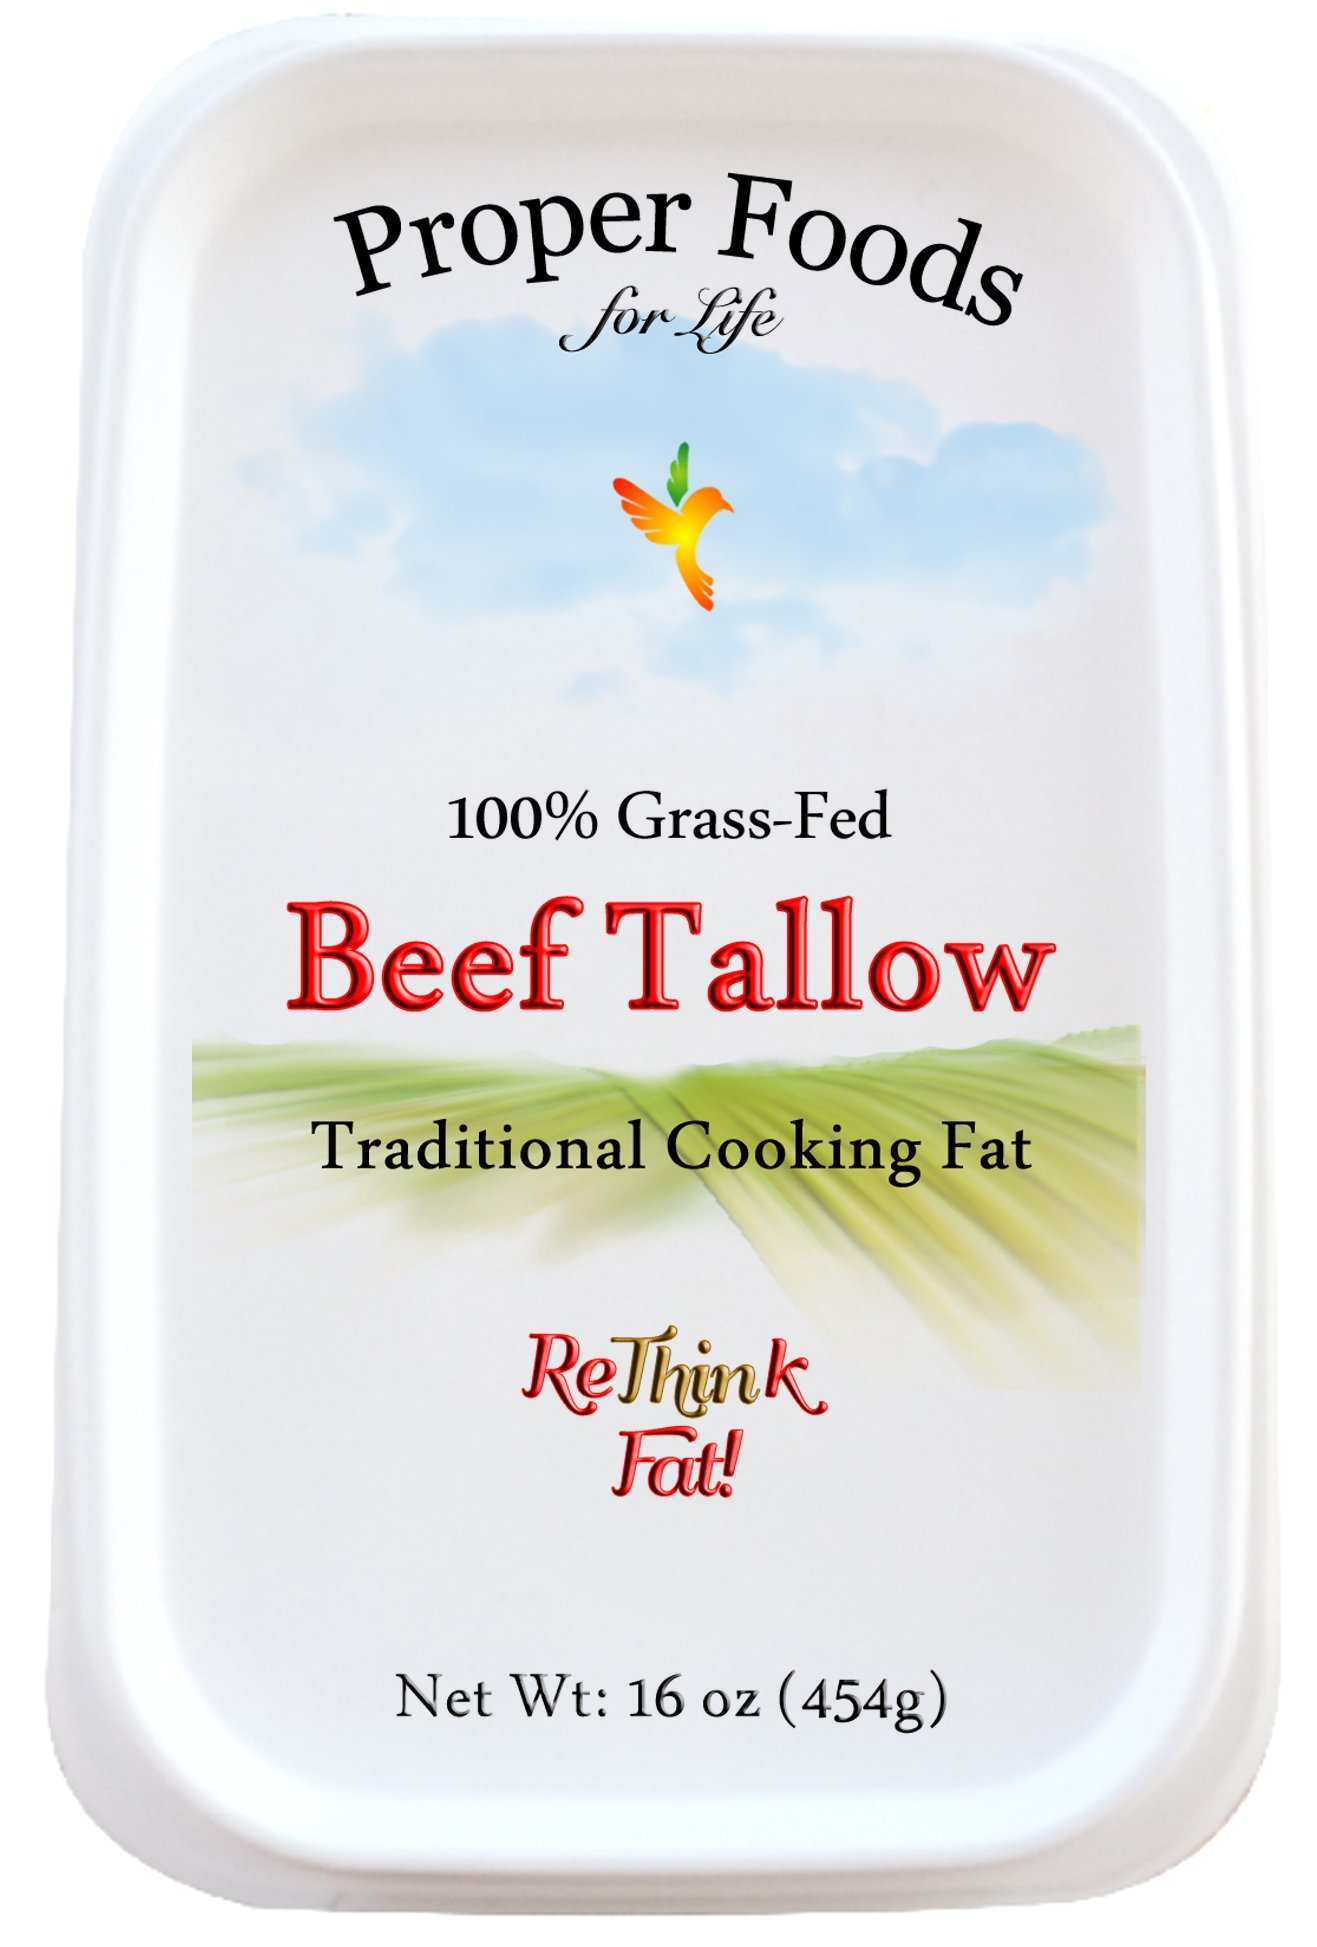 Proper Foods 100% Grass-Fed Beef Tallow - Pasture Raised - Pure Rendered Tallow - For Cooking, Baking & Frying - 1 lb (16 oz) Tub